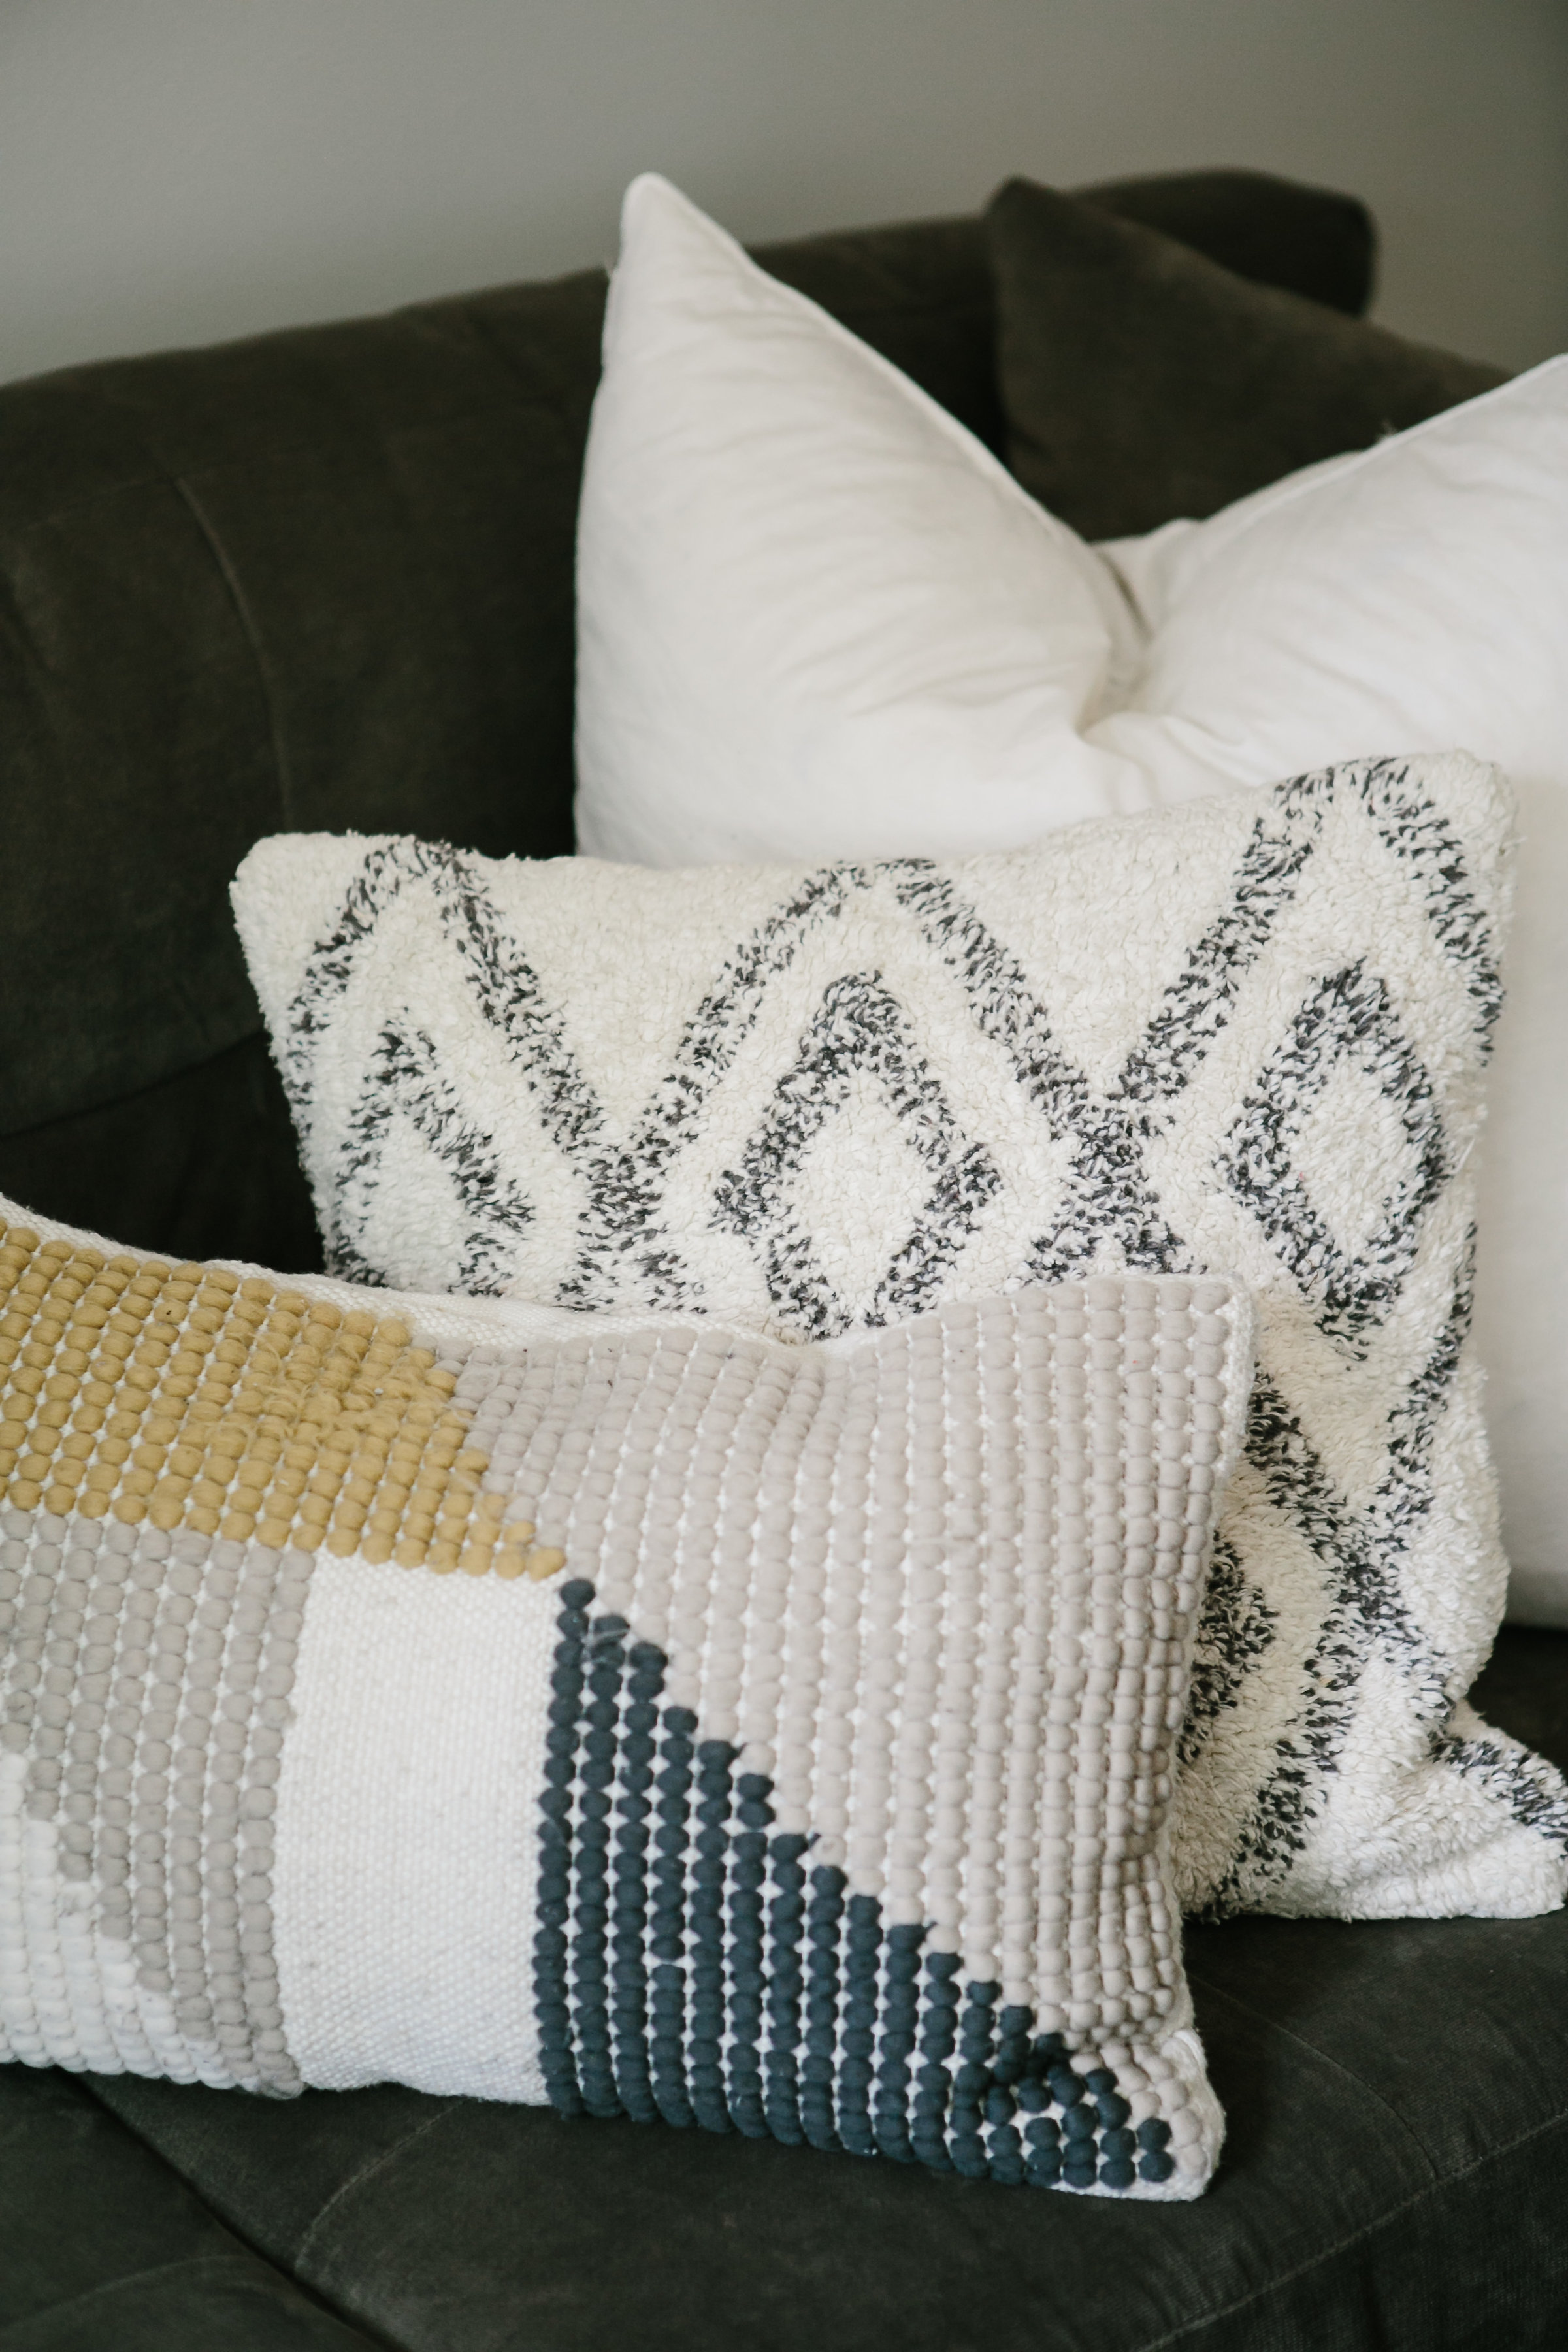 Throw pillows on a large crate and barrel sectional.